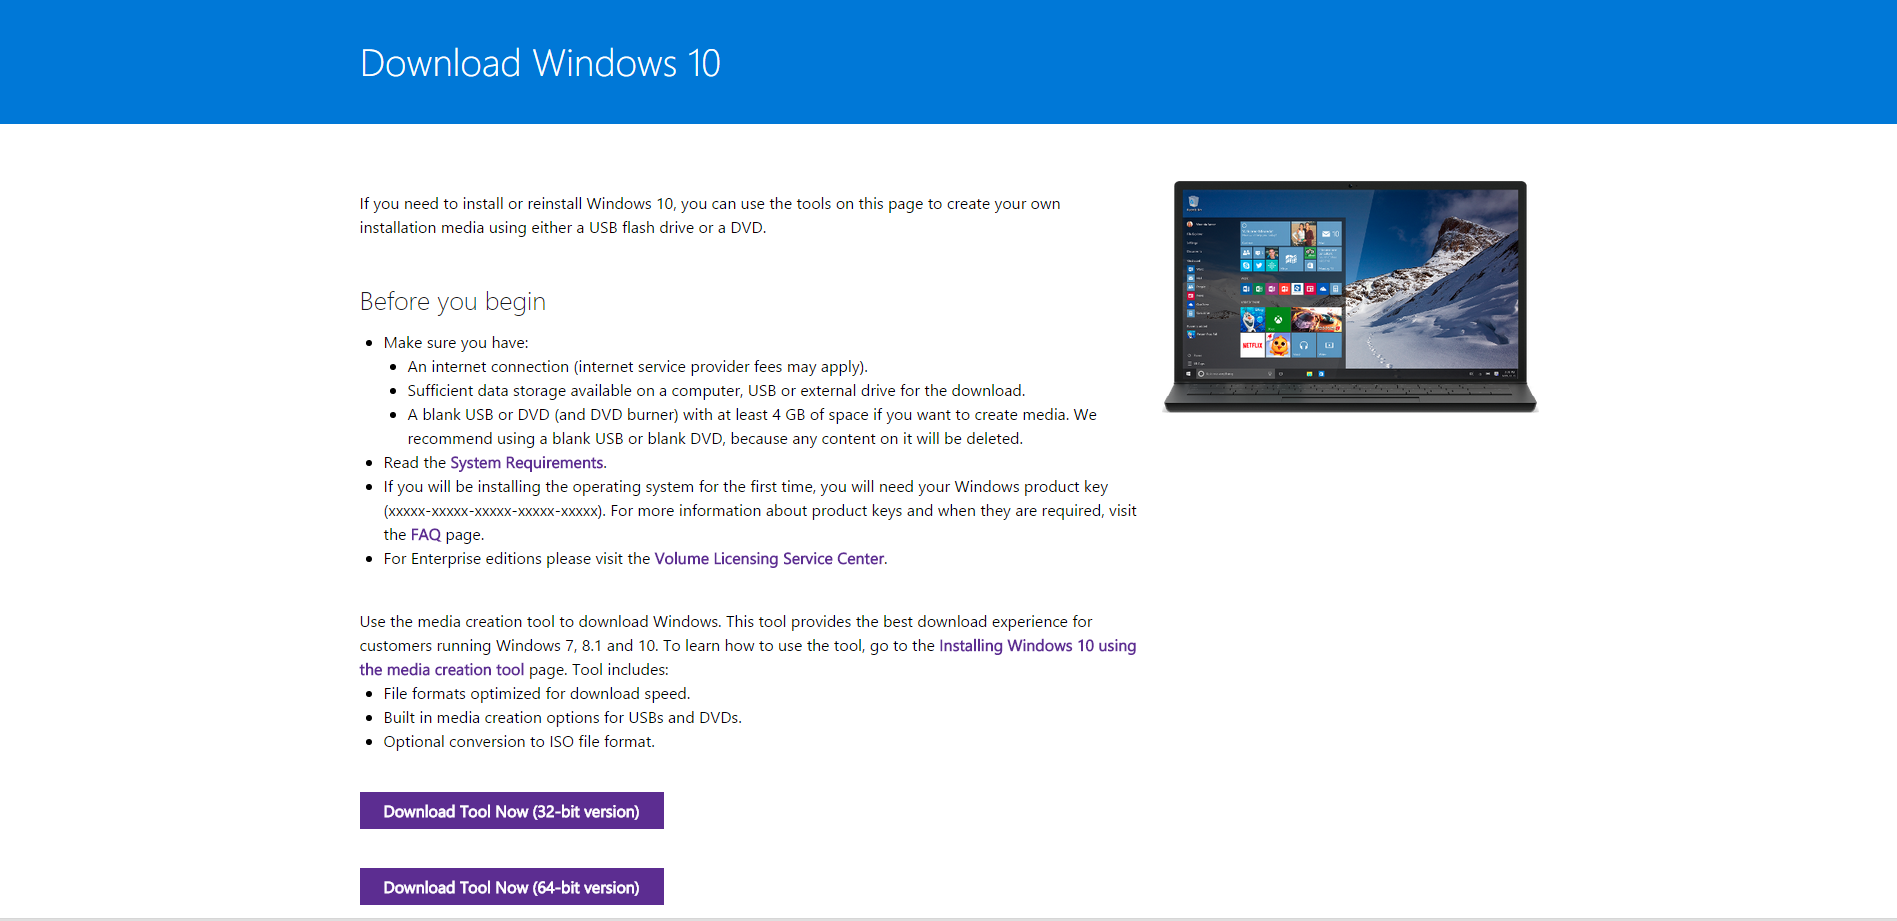 windows 8 transformation pack 3.0 unique product key free download